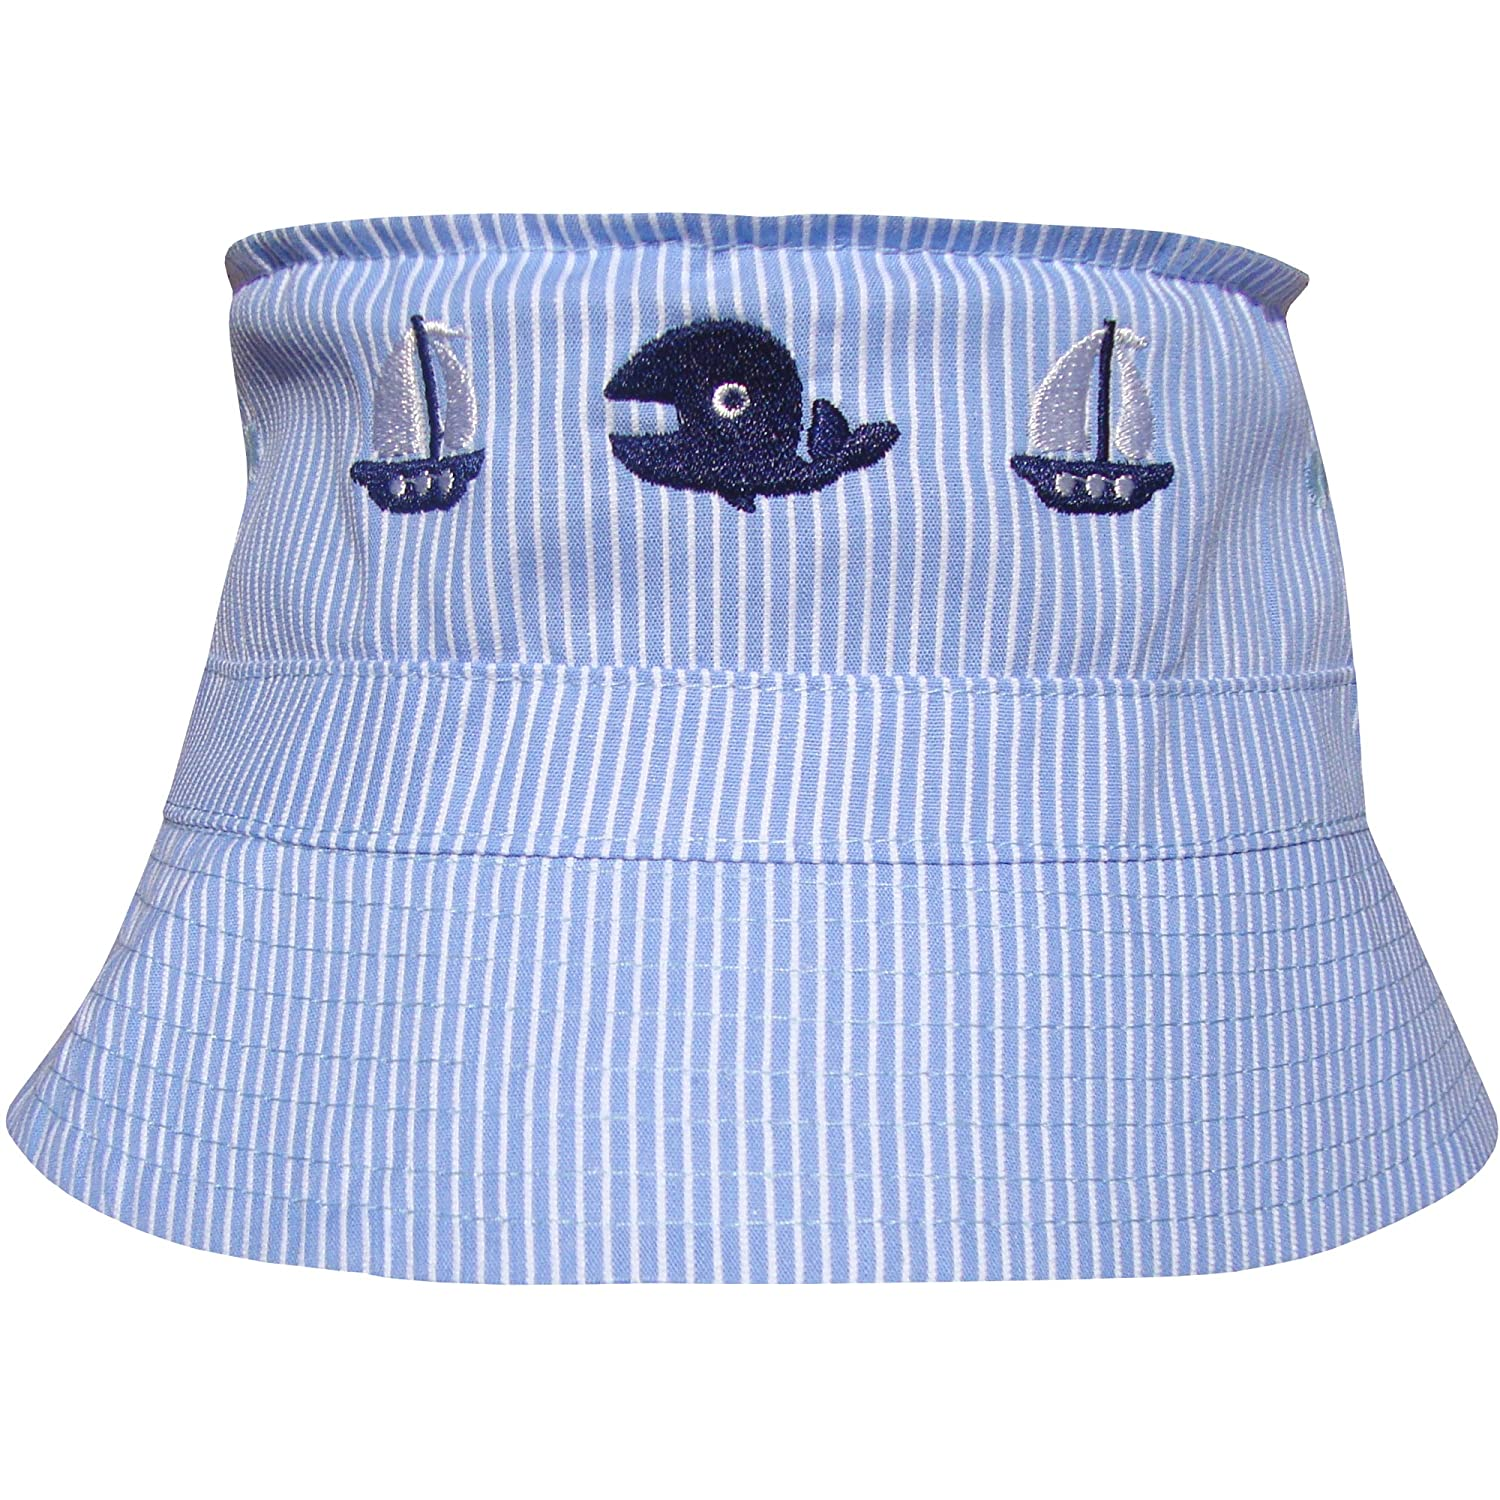 Baby Boys Blue Crabs /& Robots Bucket Style Summer Sun Hat